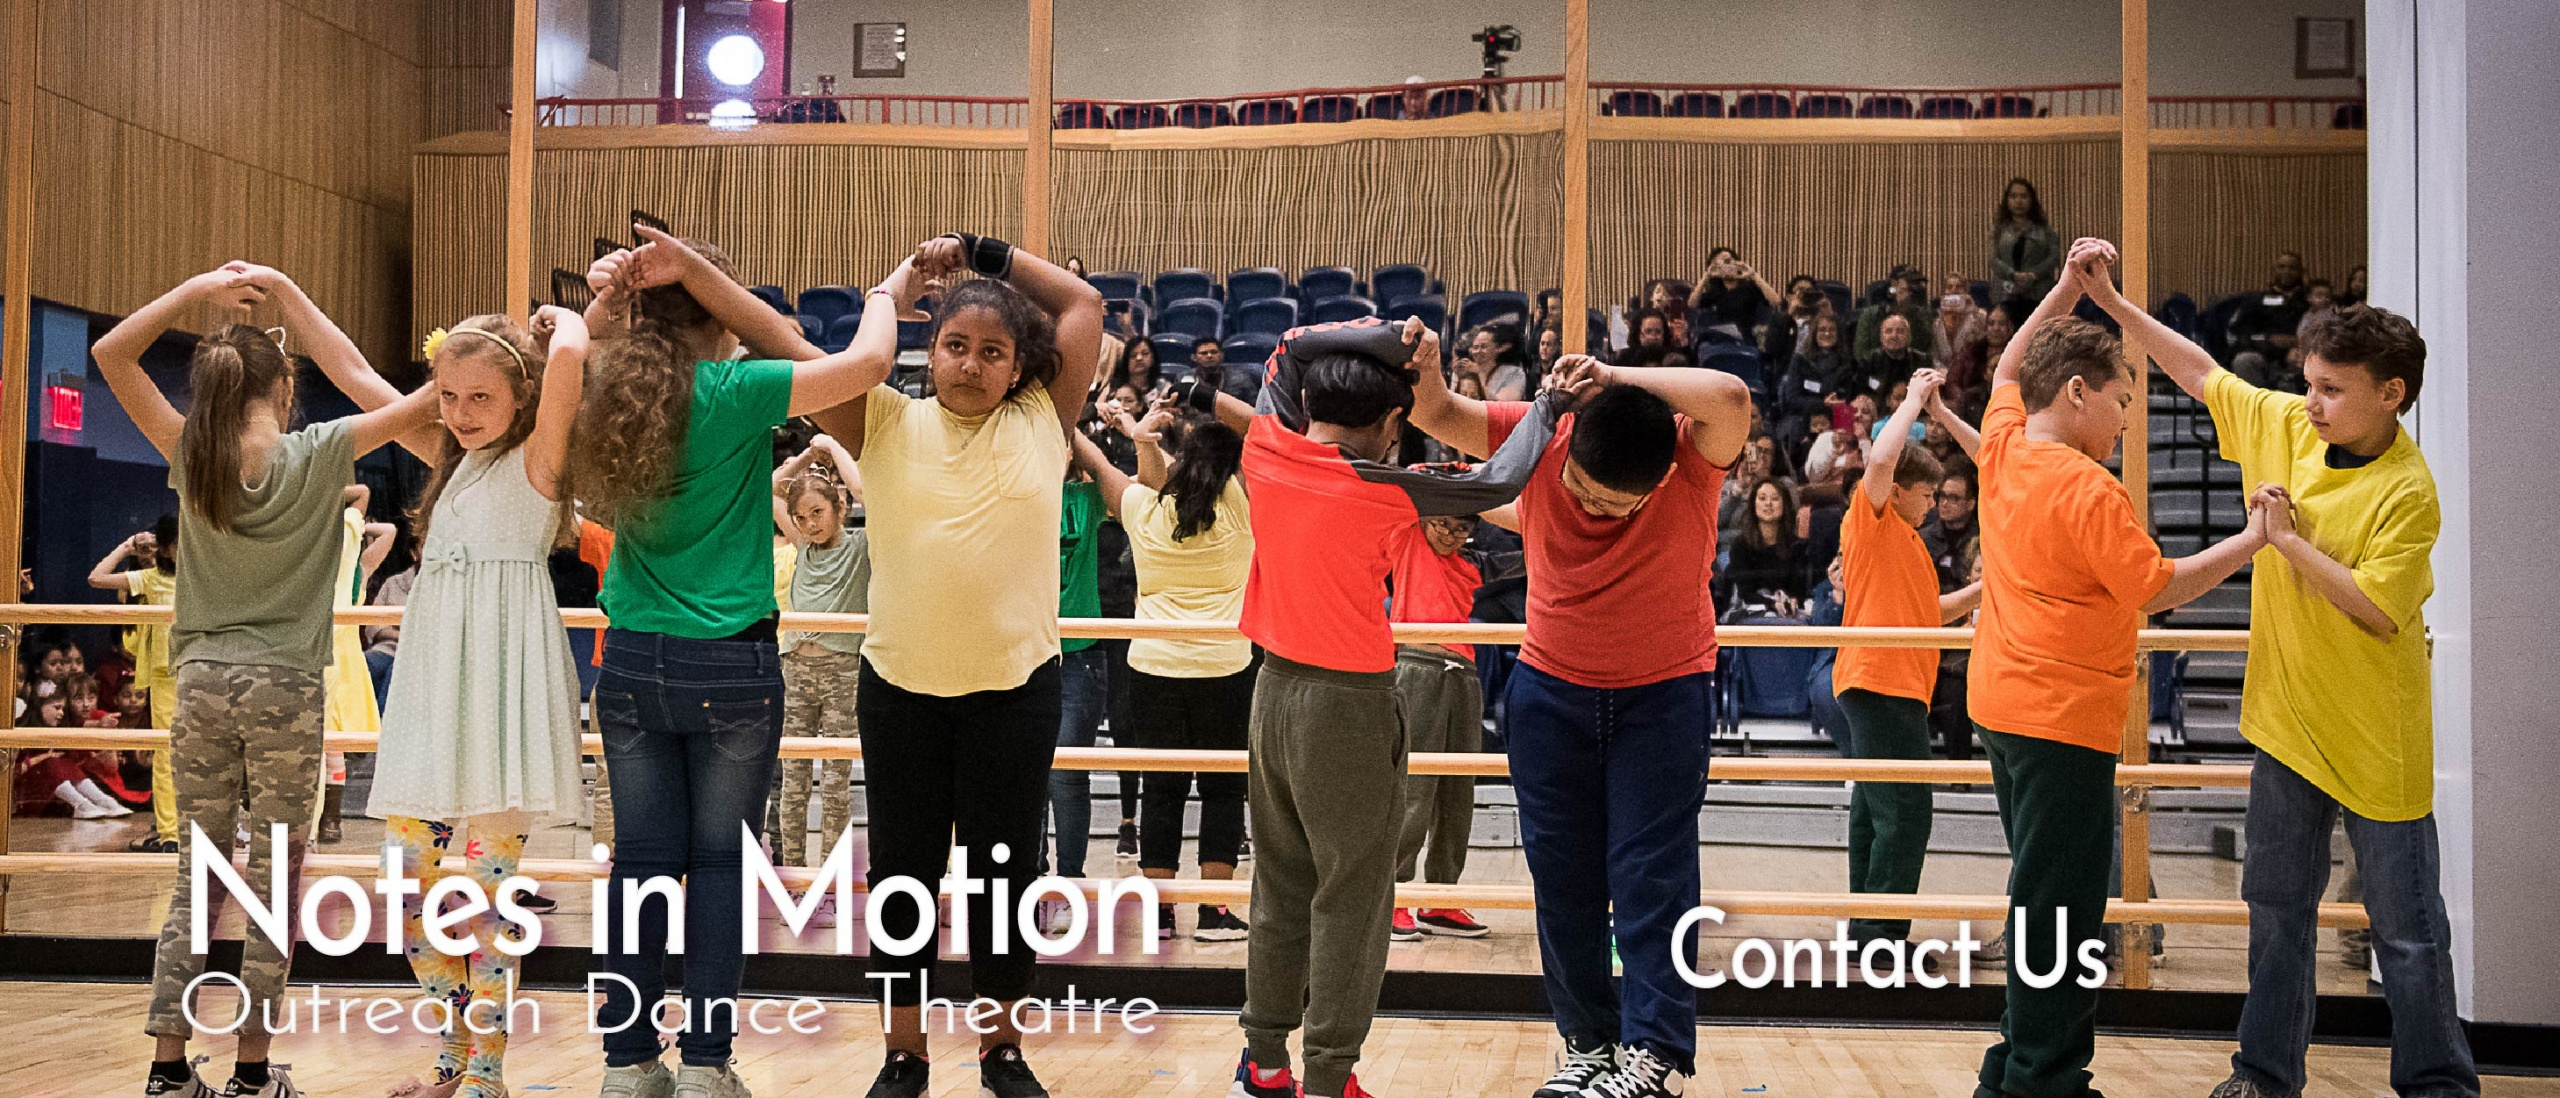 Students from PS 290, Queens performing in a Latin Dance residency